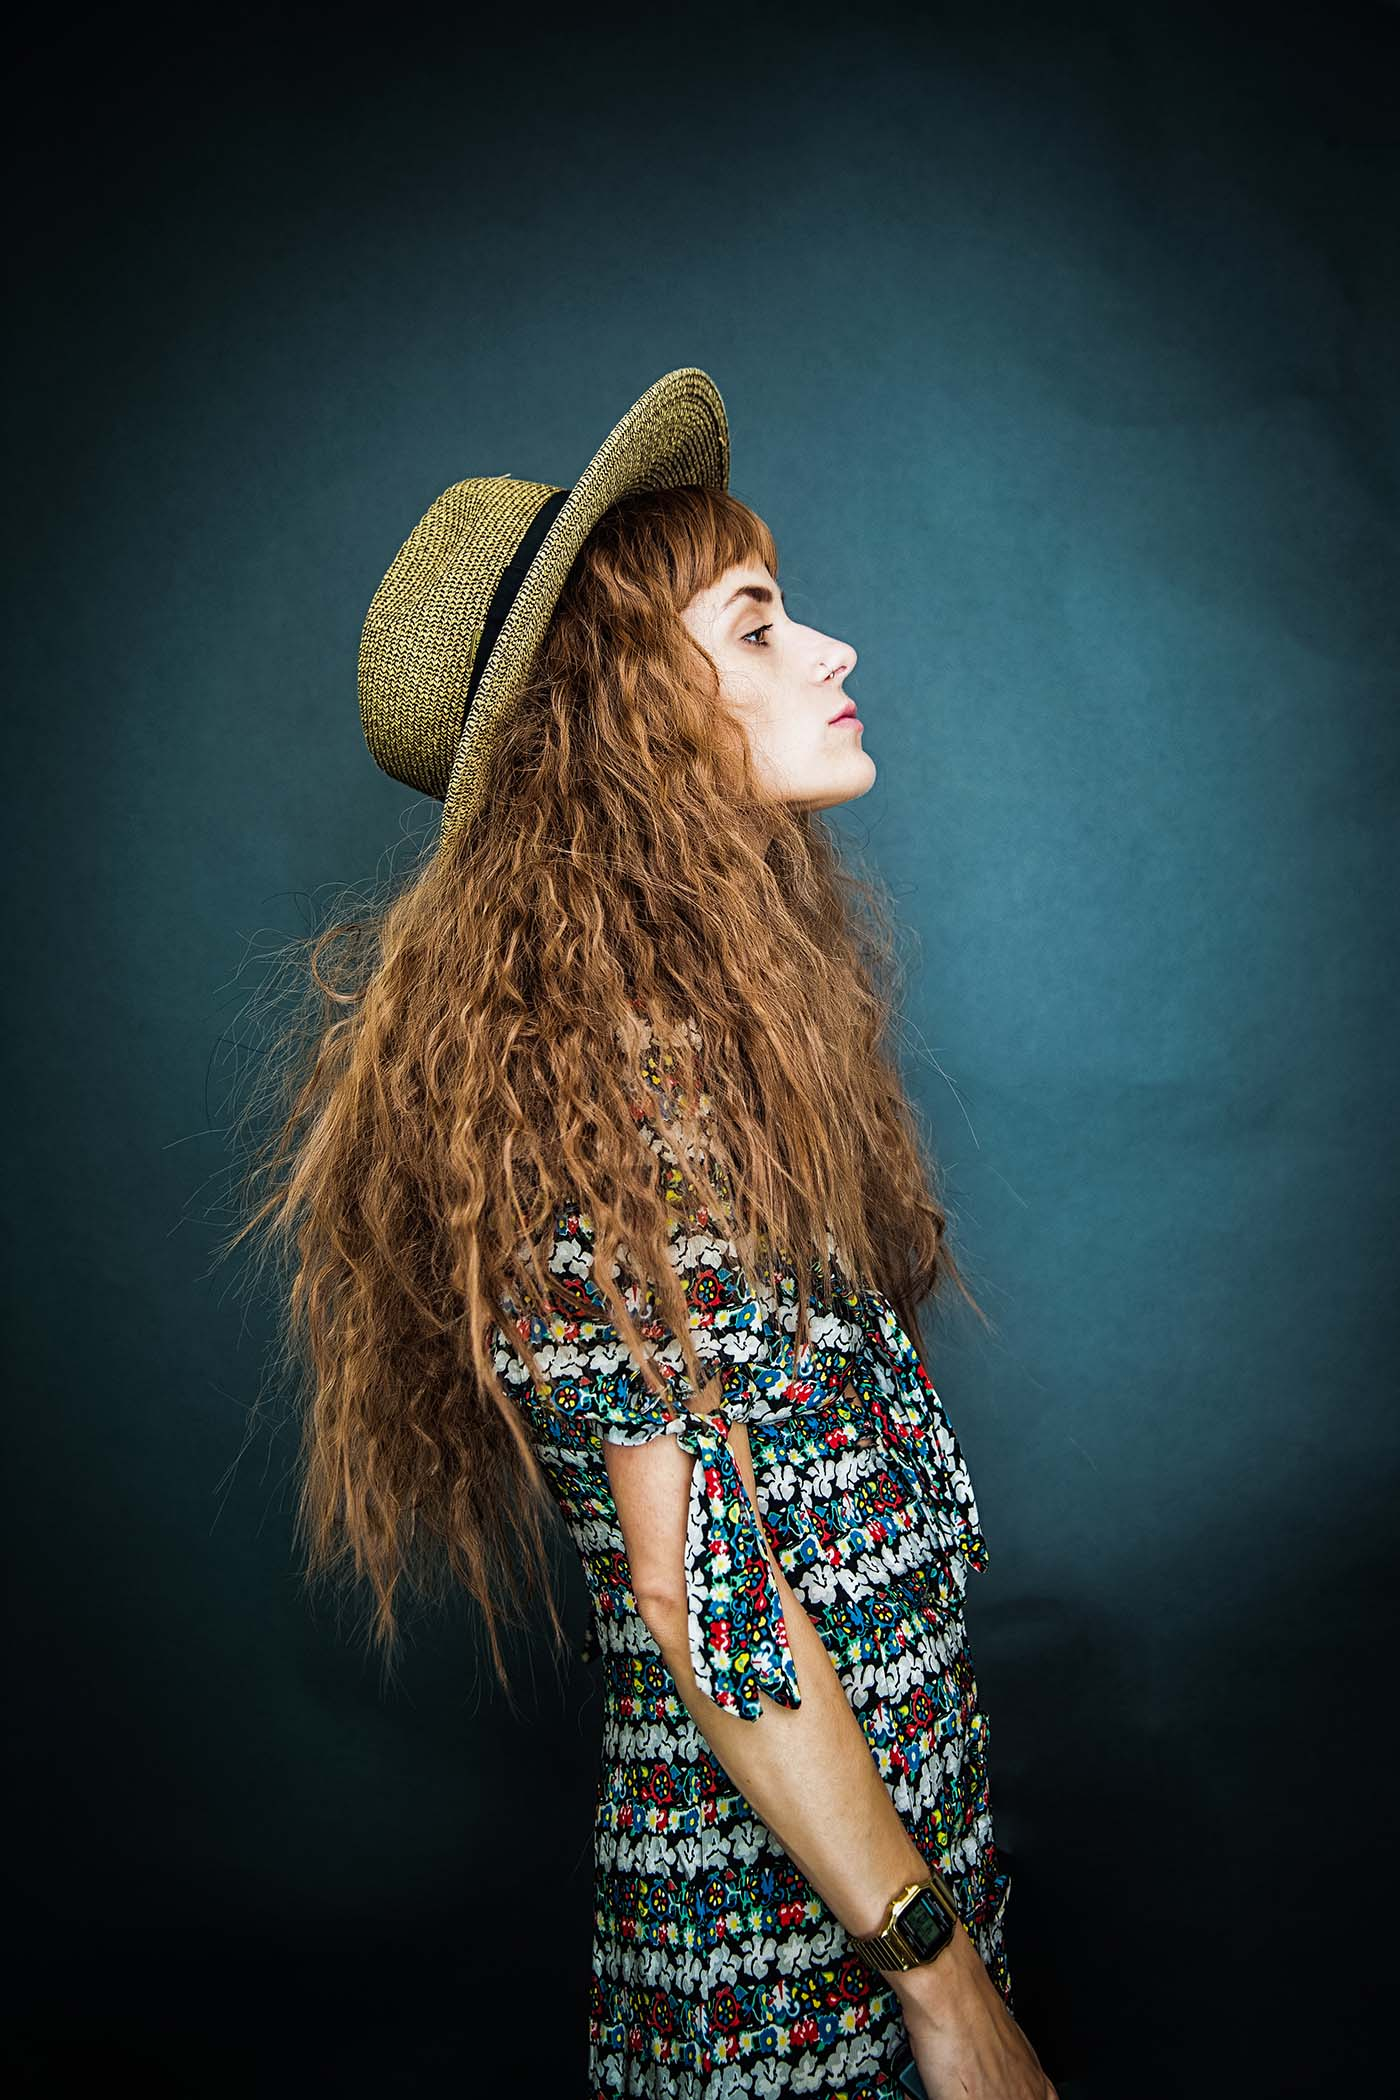 Fashion Photography: Woman in hat against a blue backdrop.